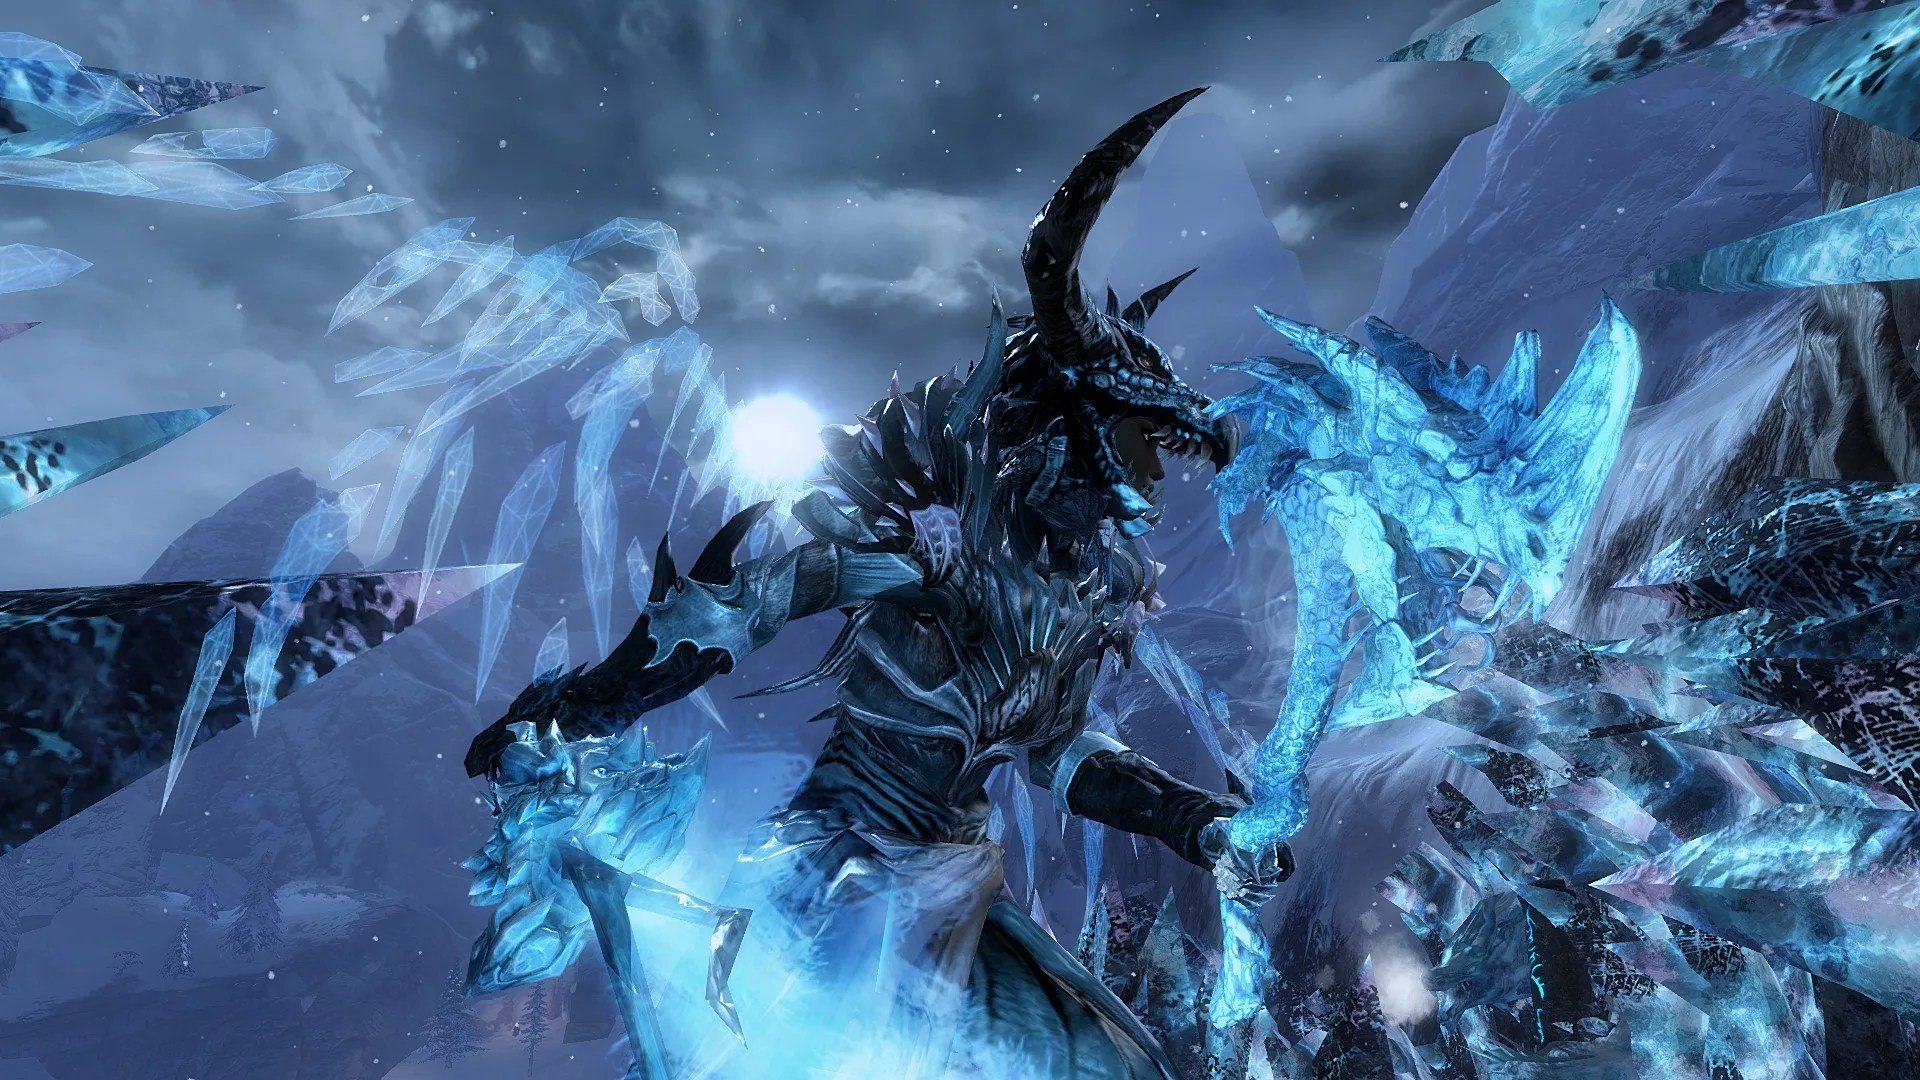 Dextra The Corrupted Ice Dragon Guild Wars 2